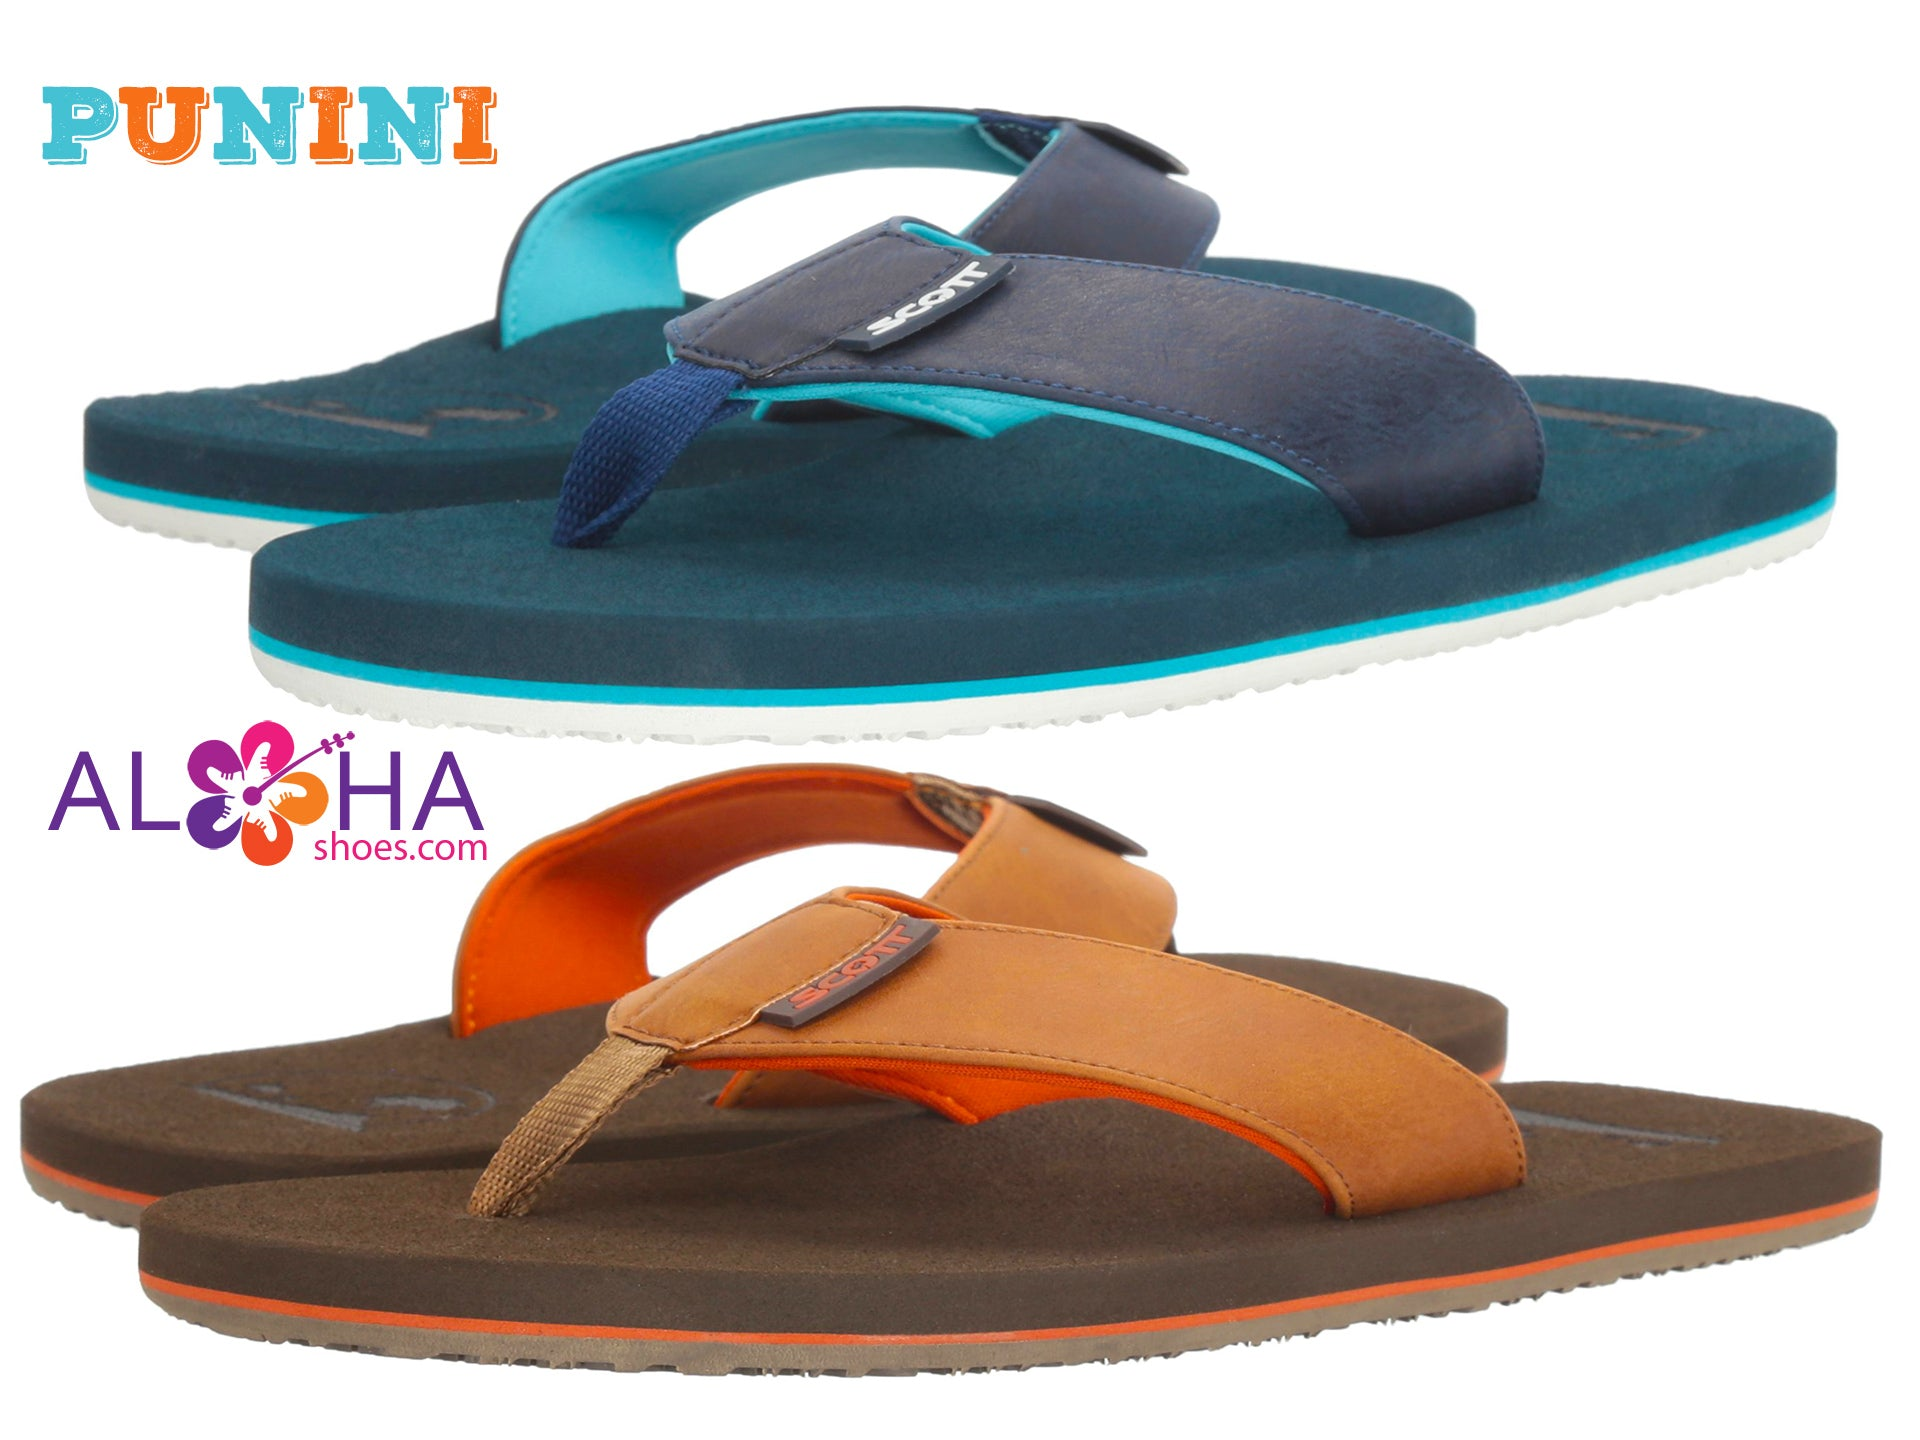 845df7150 Punini Leather Flip Fops with Absorbing Shock Insole- AlohaShoes.com · Scott  Mens Punini Sandals ...